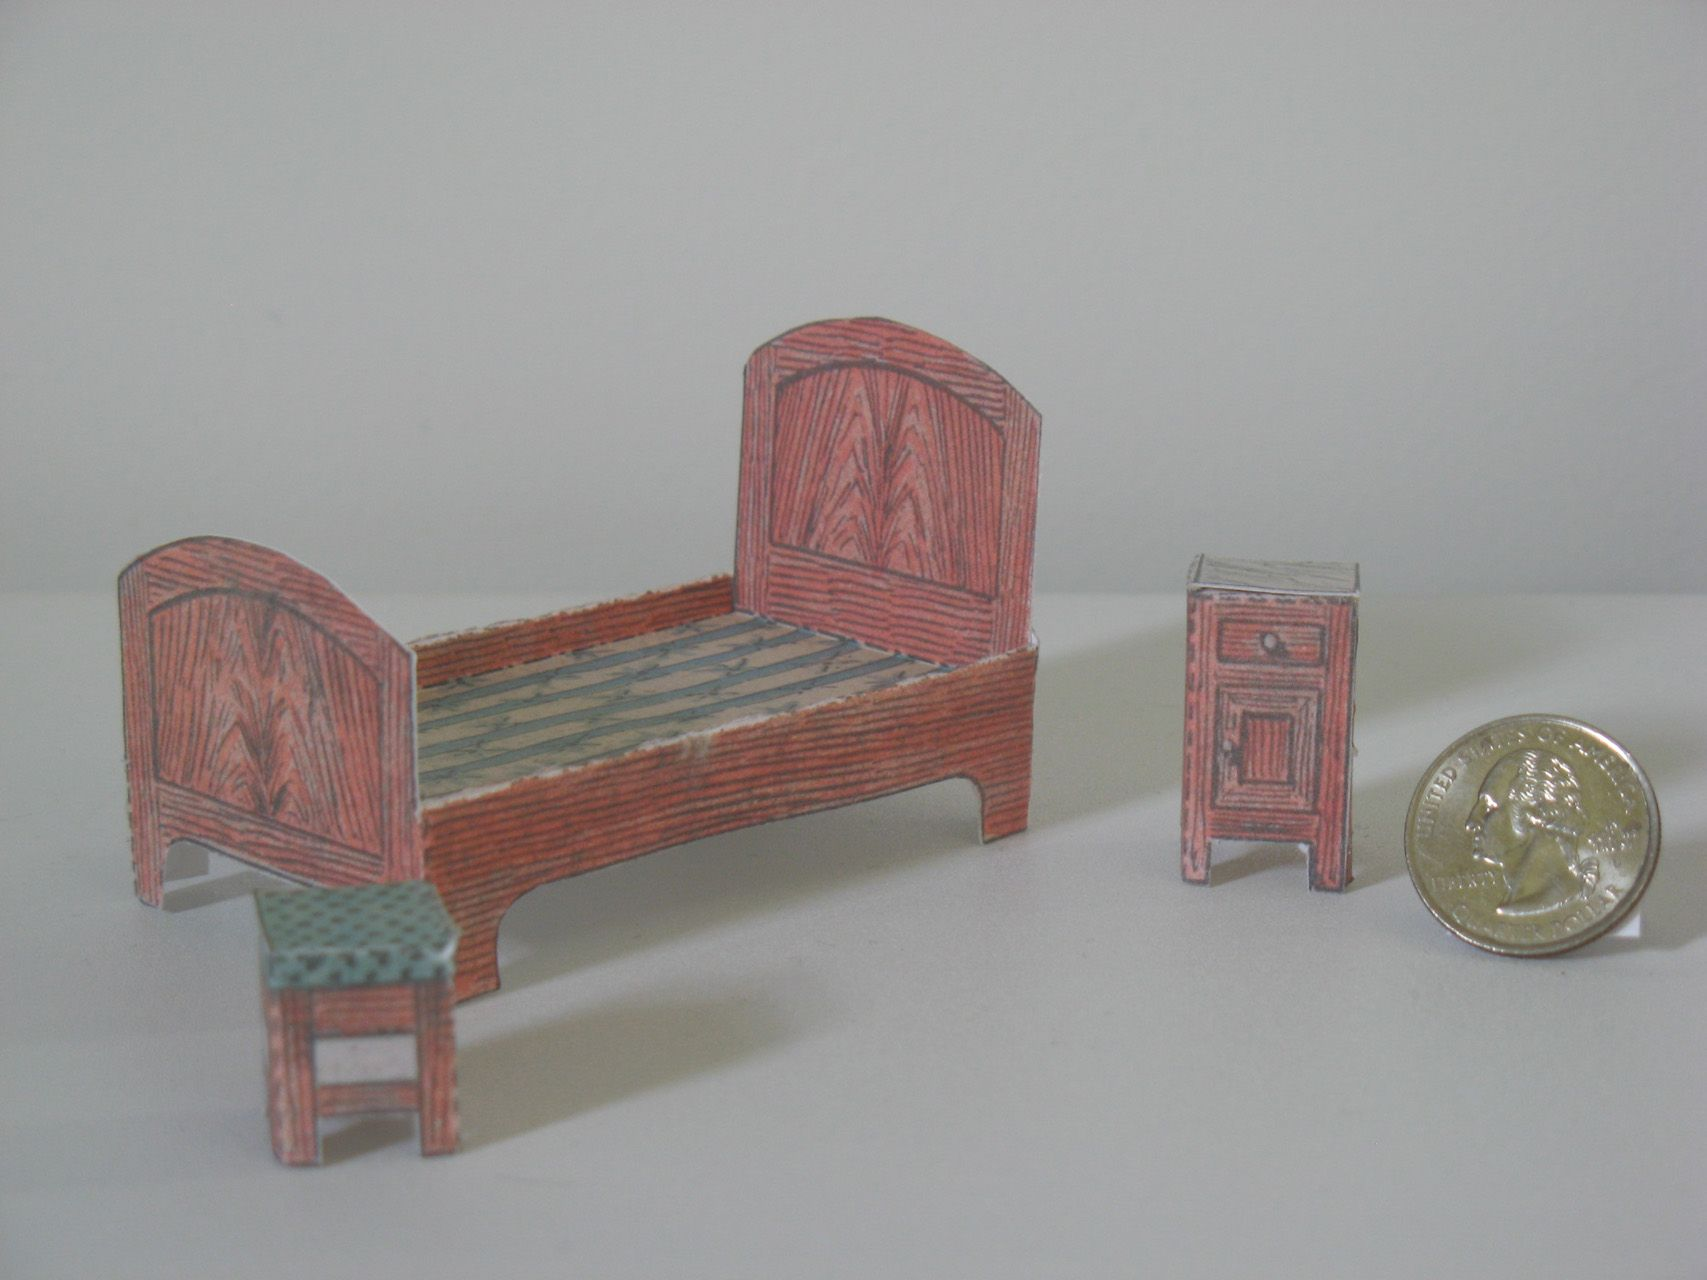 doll house furniture plans. Cardboard Doll House Furniture Plans R